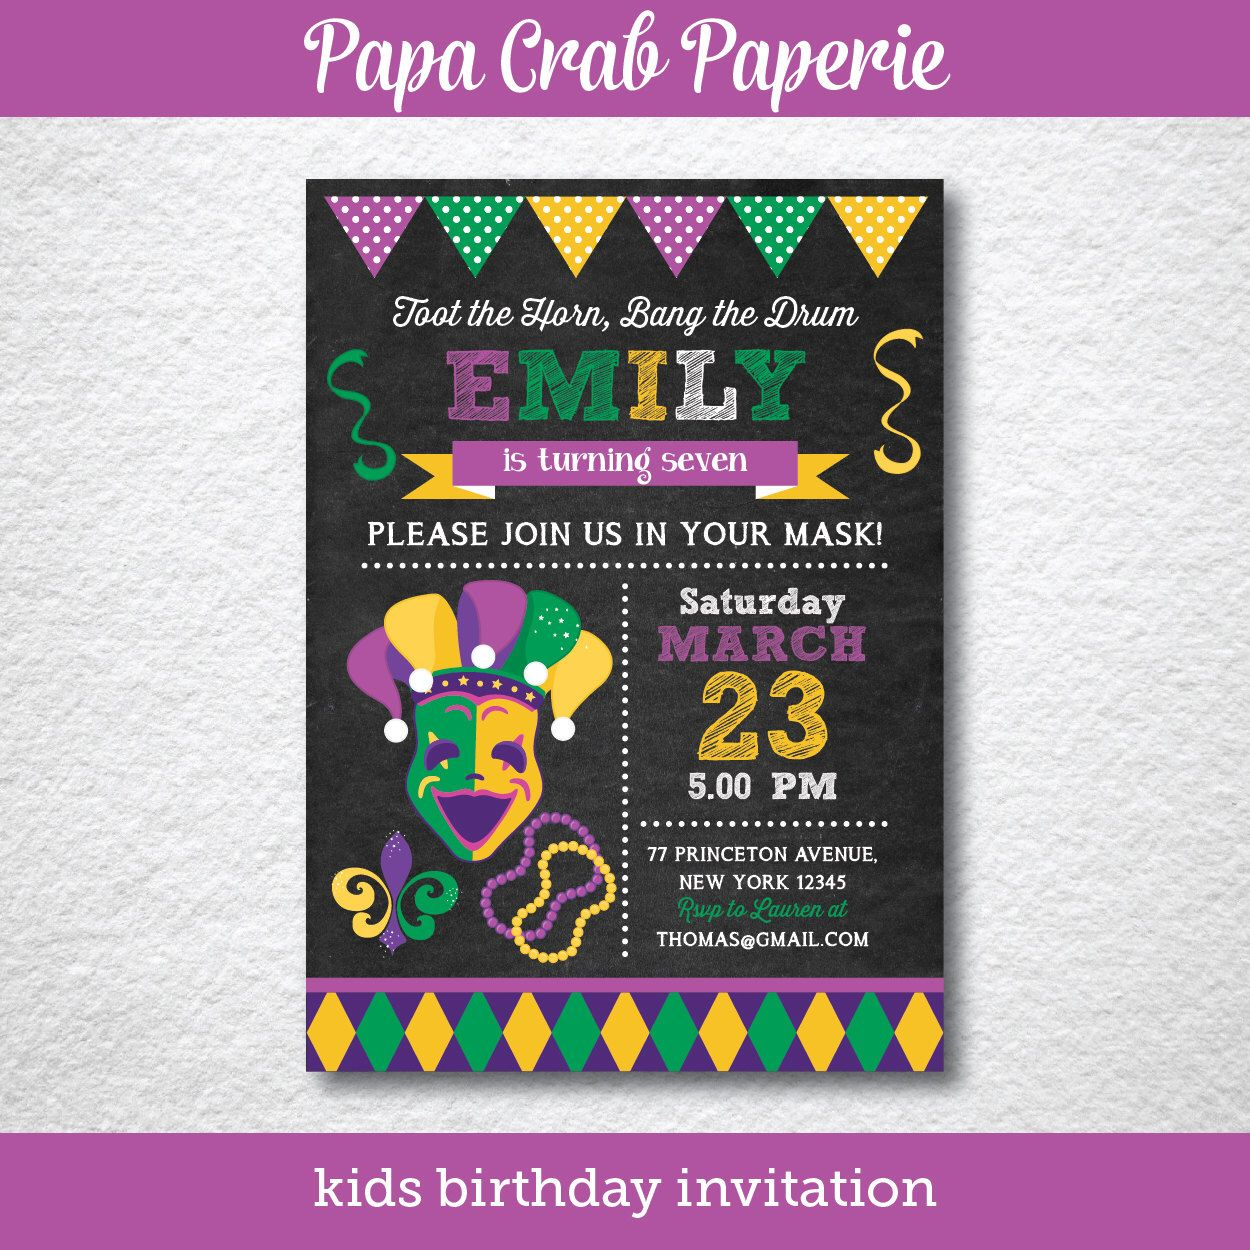 image about Free Printable Mardi Gras Invitations named Immediate Down load, Editable Mardi Gras Birthday Invitation